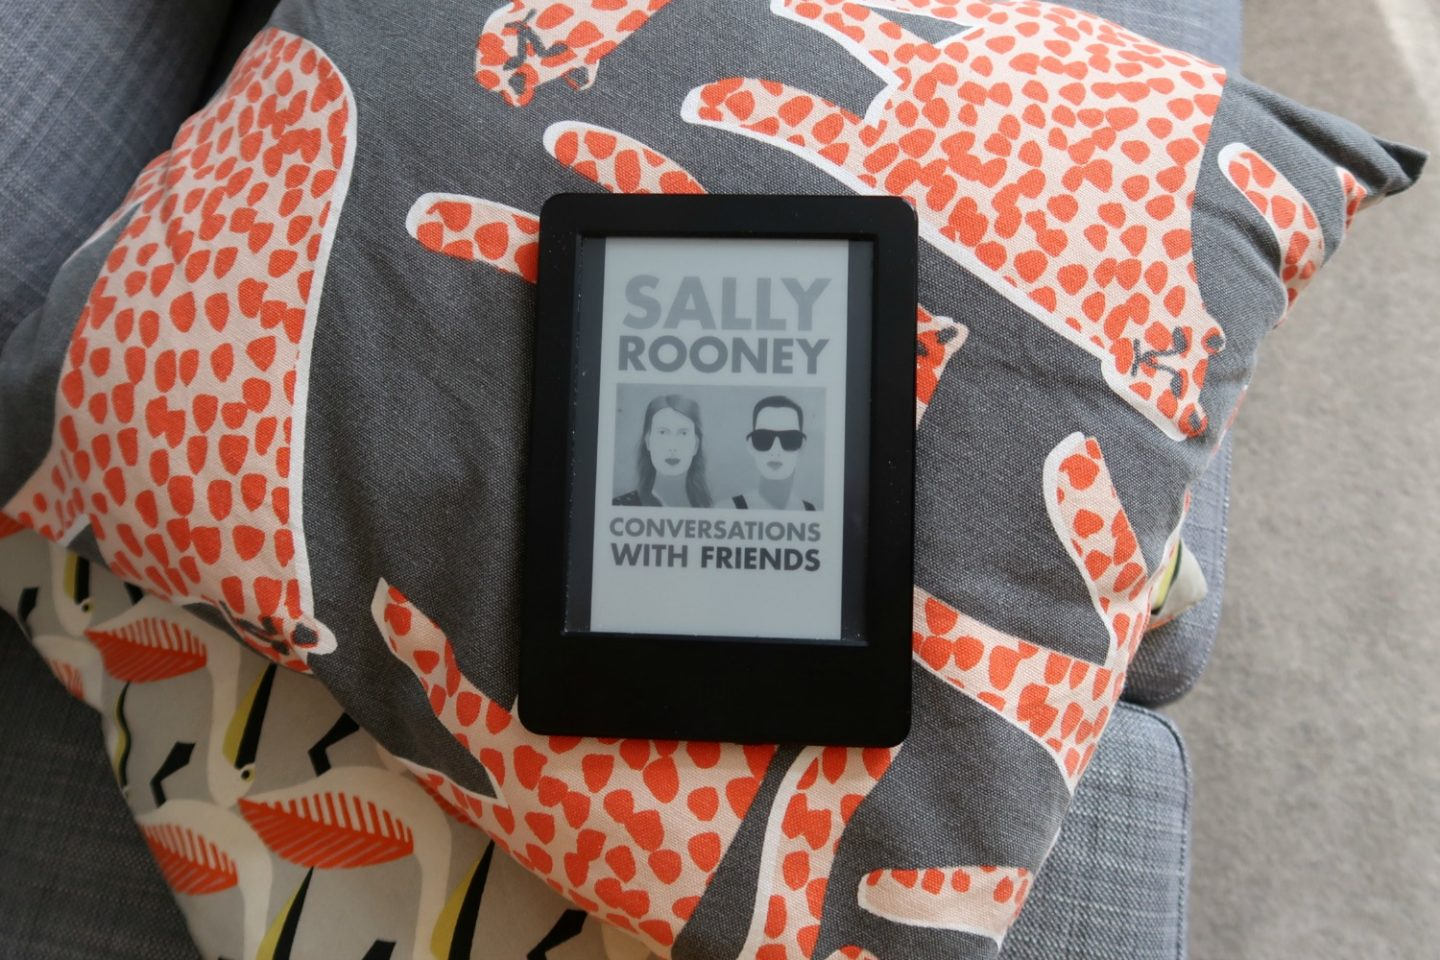 Conversations with Friends review - the book by Sally Rooney